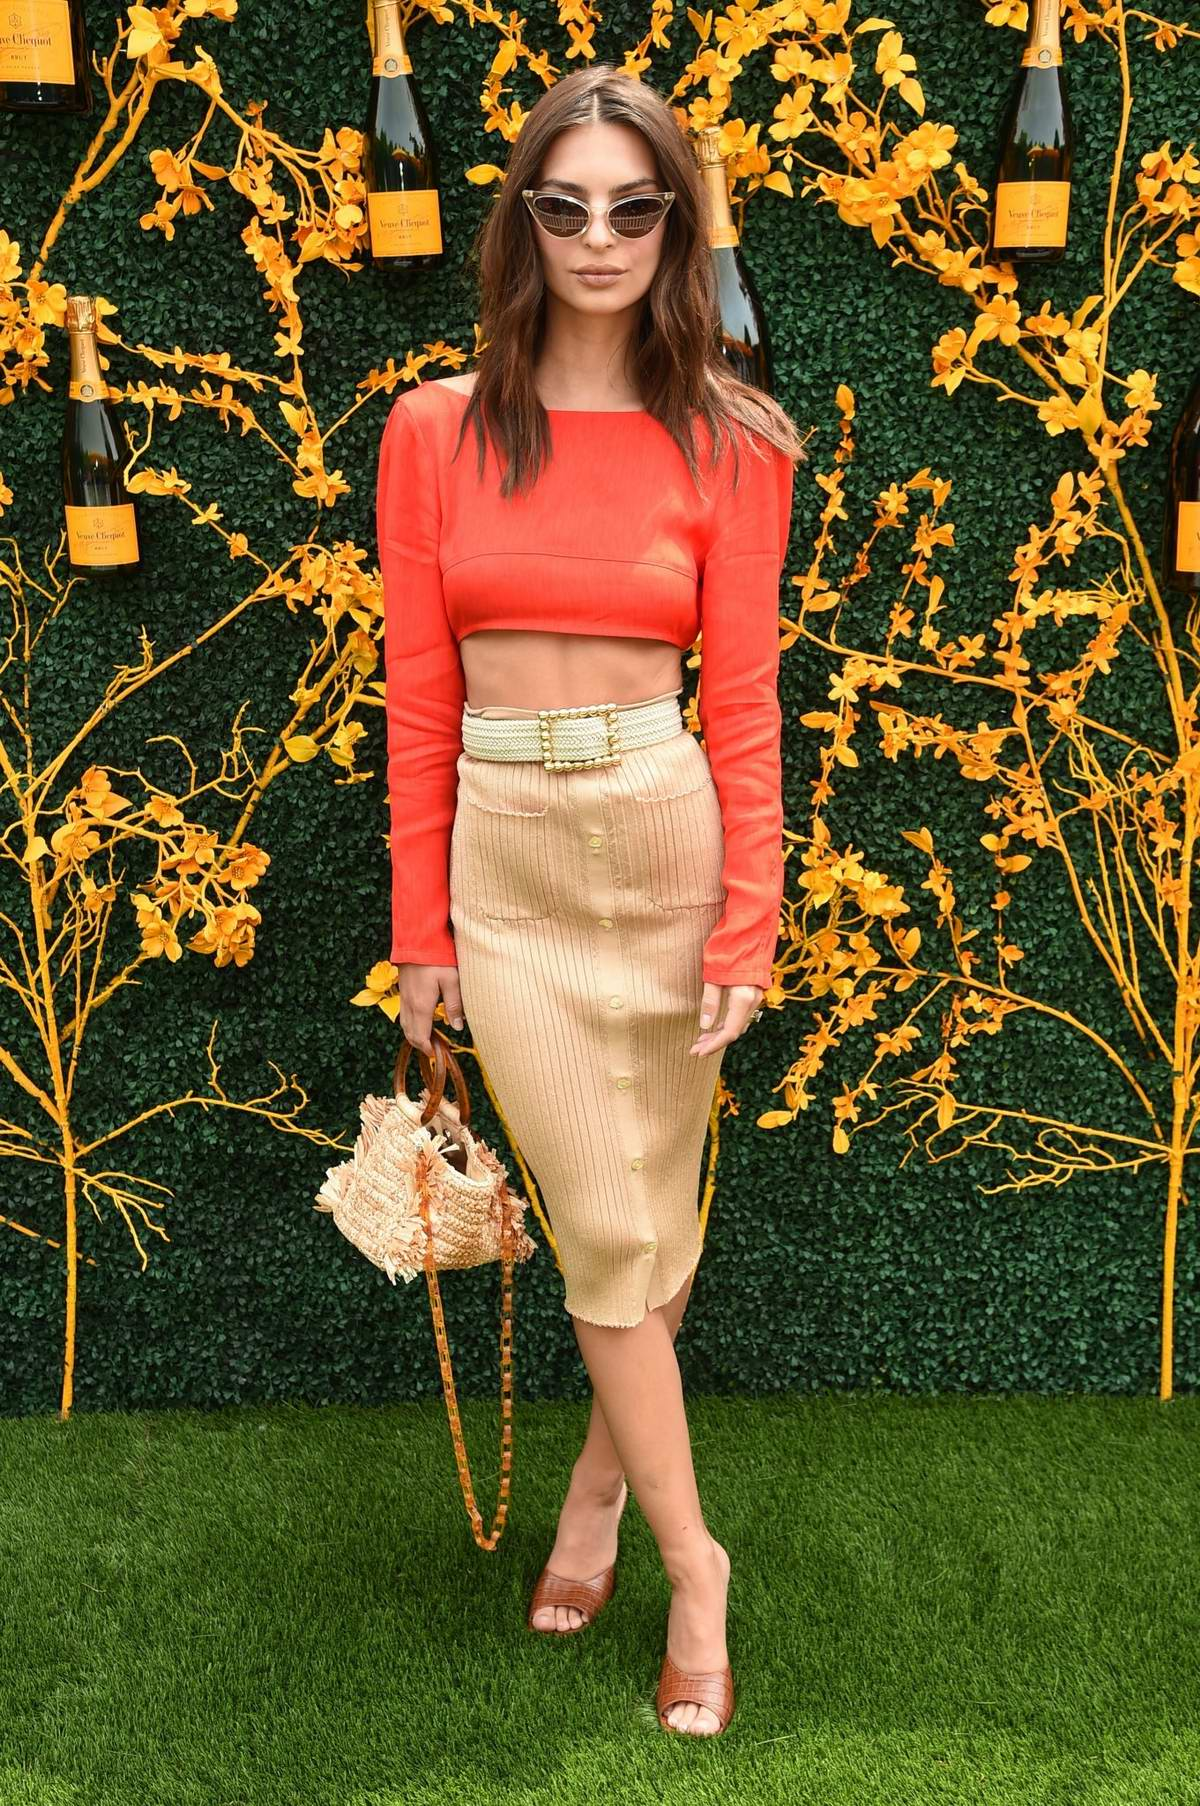 Emily Ratajkowski attends the 12th Annual Veuve Clicquot Polo Classic in Liberty State Park, Jersey City, New Jersey